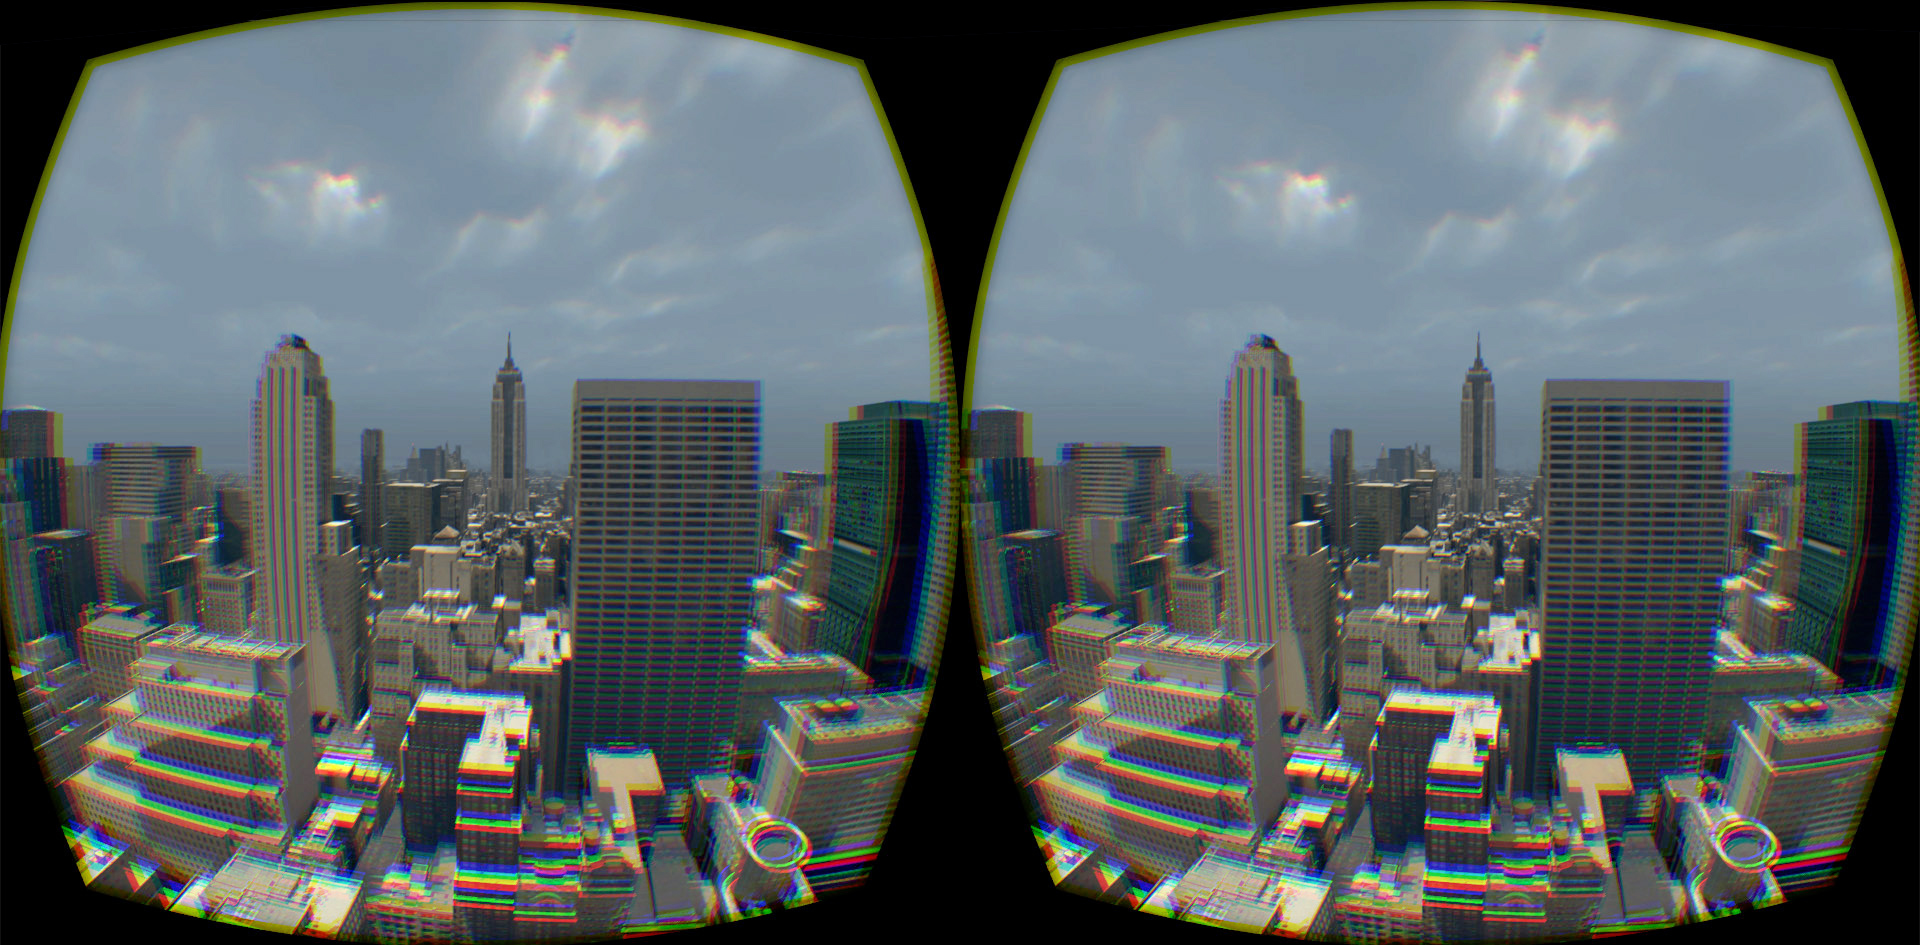 The Birdly aerial view of Manhattan, New York, through an Oculus Rift headset. Courtesy of Somniacs/Future of StoryTelling